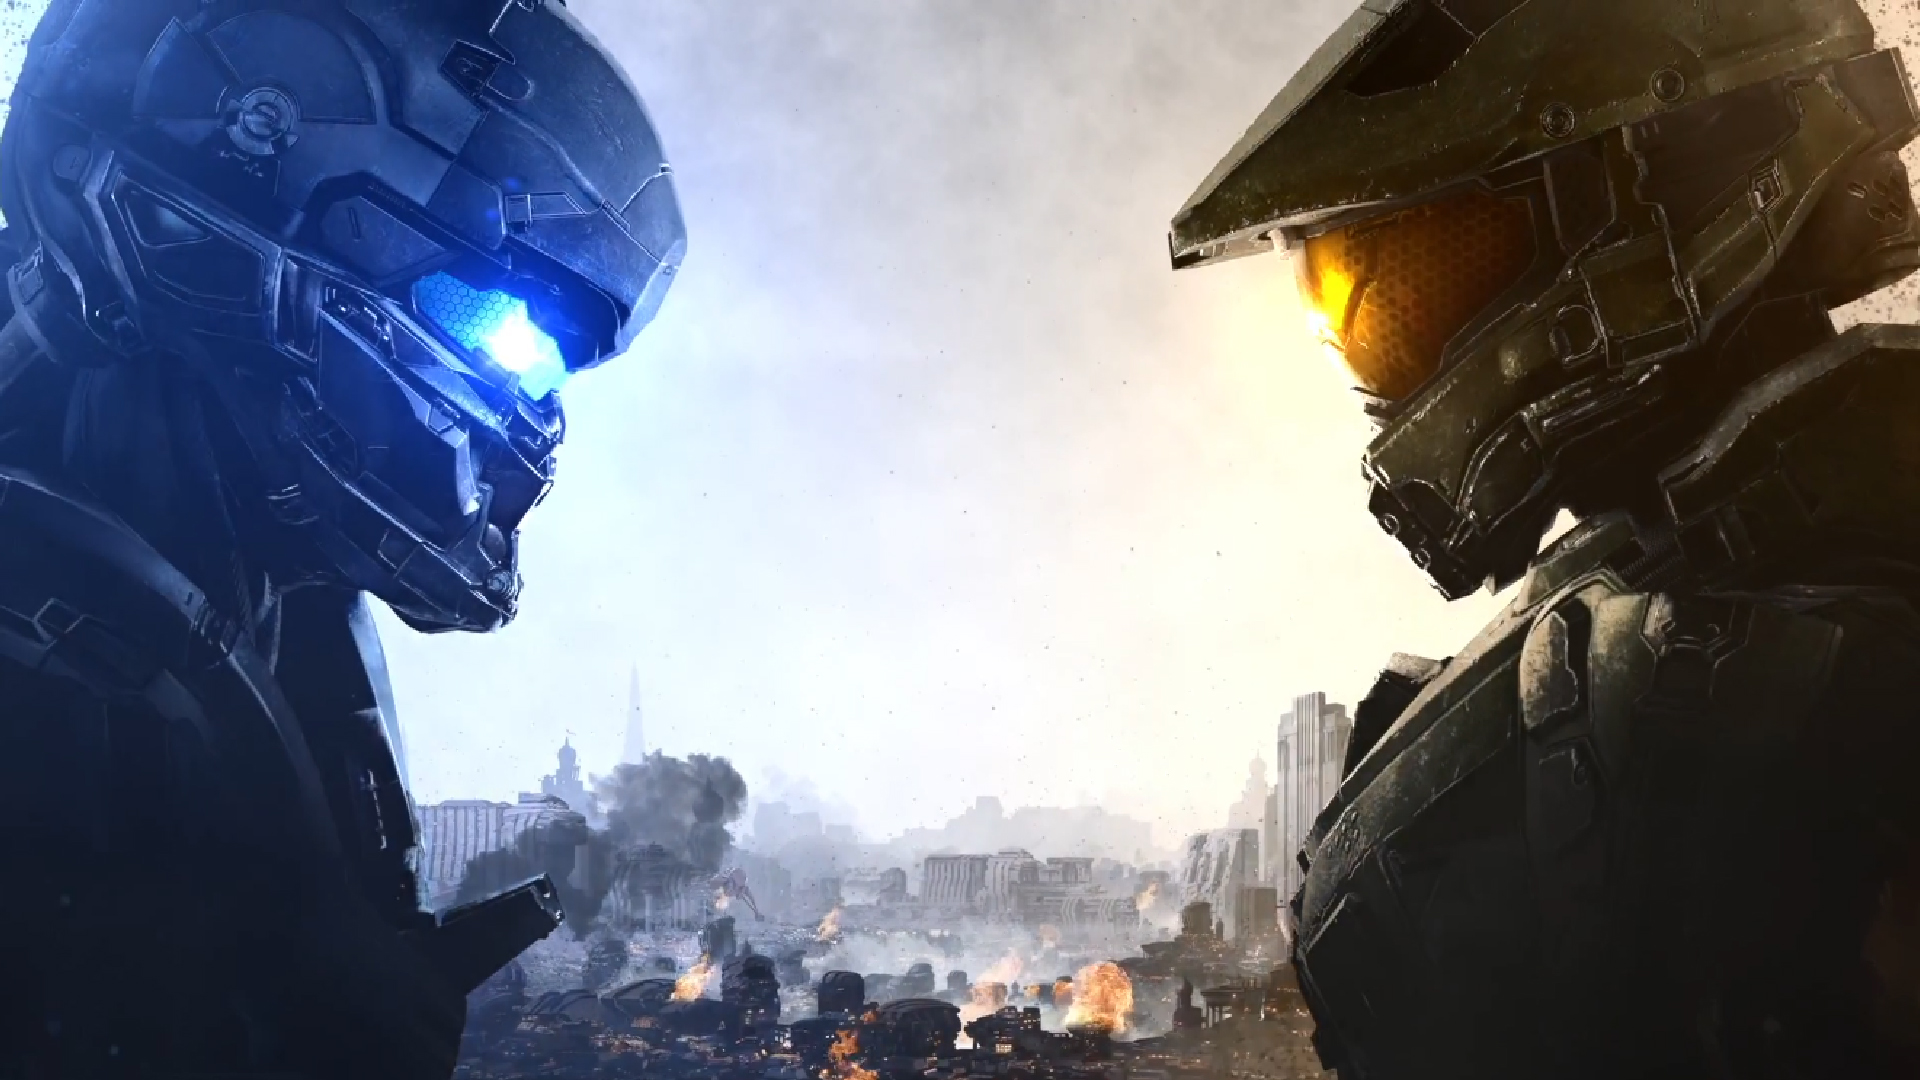 Halo 5 Guardians Wallpaper: Halo 5: Guardians Has Made A Lot Of Money, But A Video